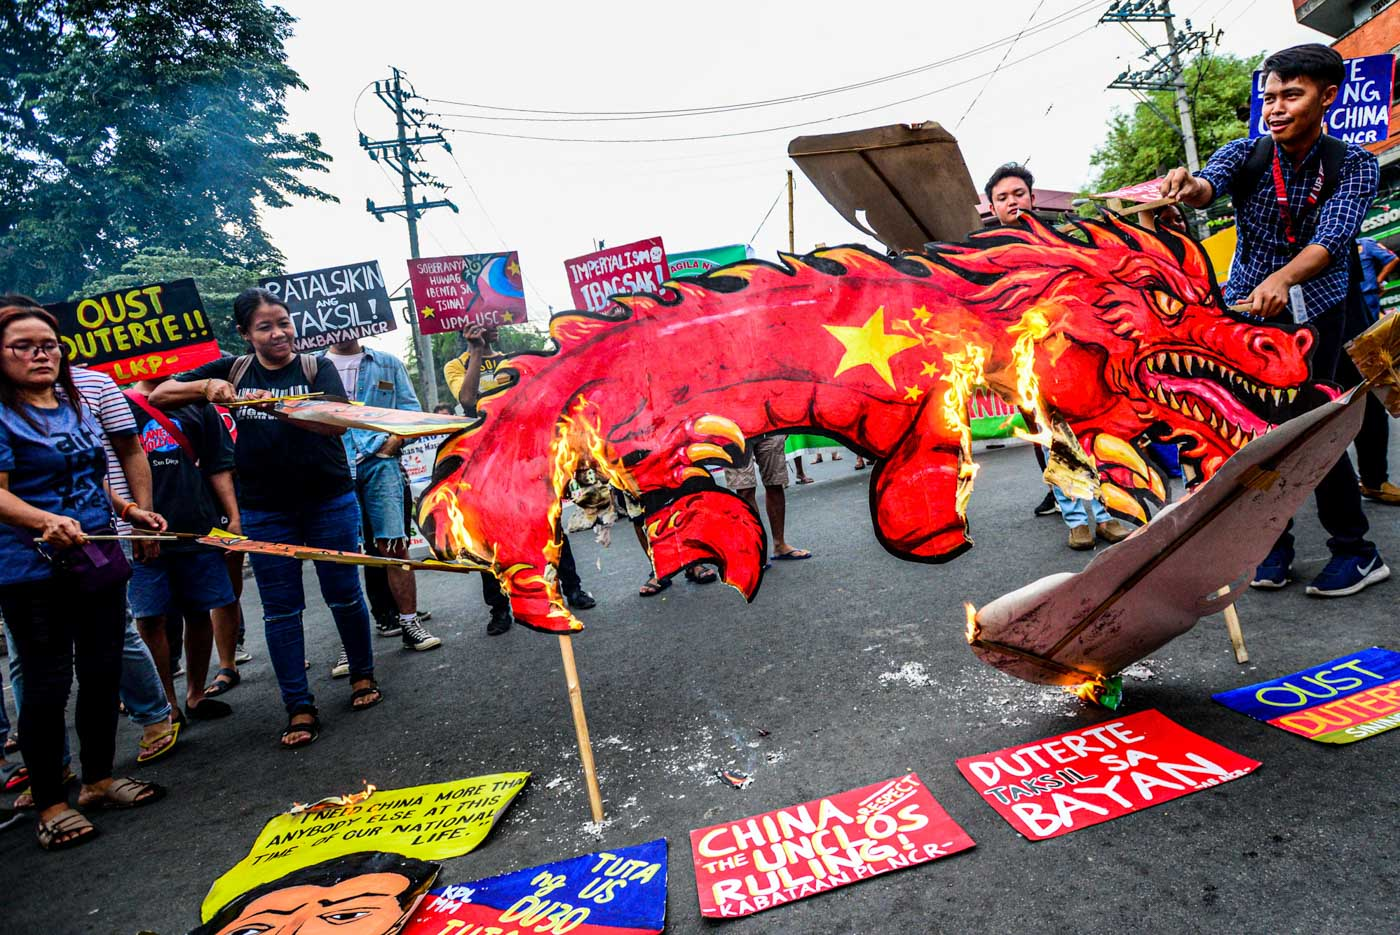 BURN. Protesters burn an image of the Chinese dragon and an image of Duterte to cap the picket protest at Mendiola, Manila on July 12, 2019. Photo by Maria Tan/Rappler